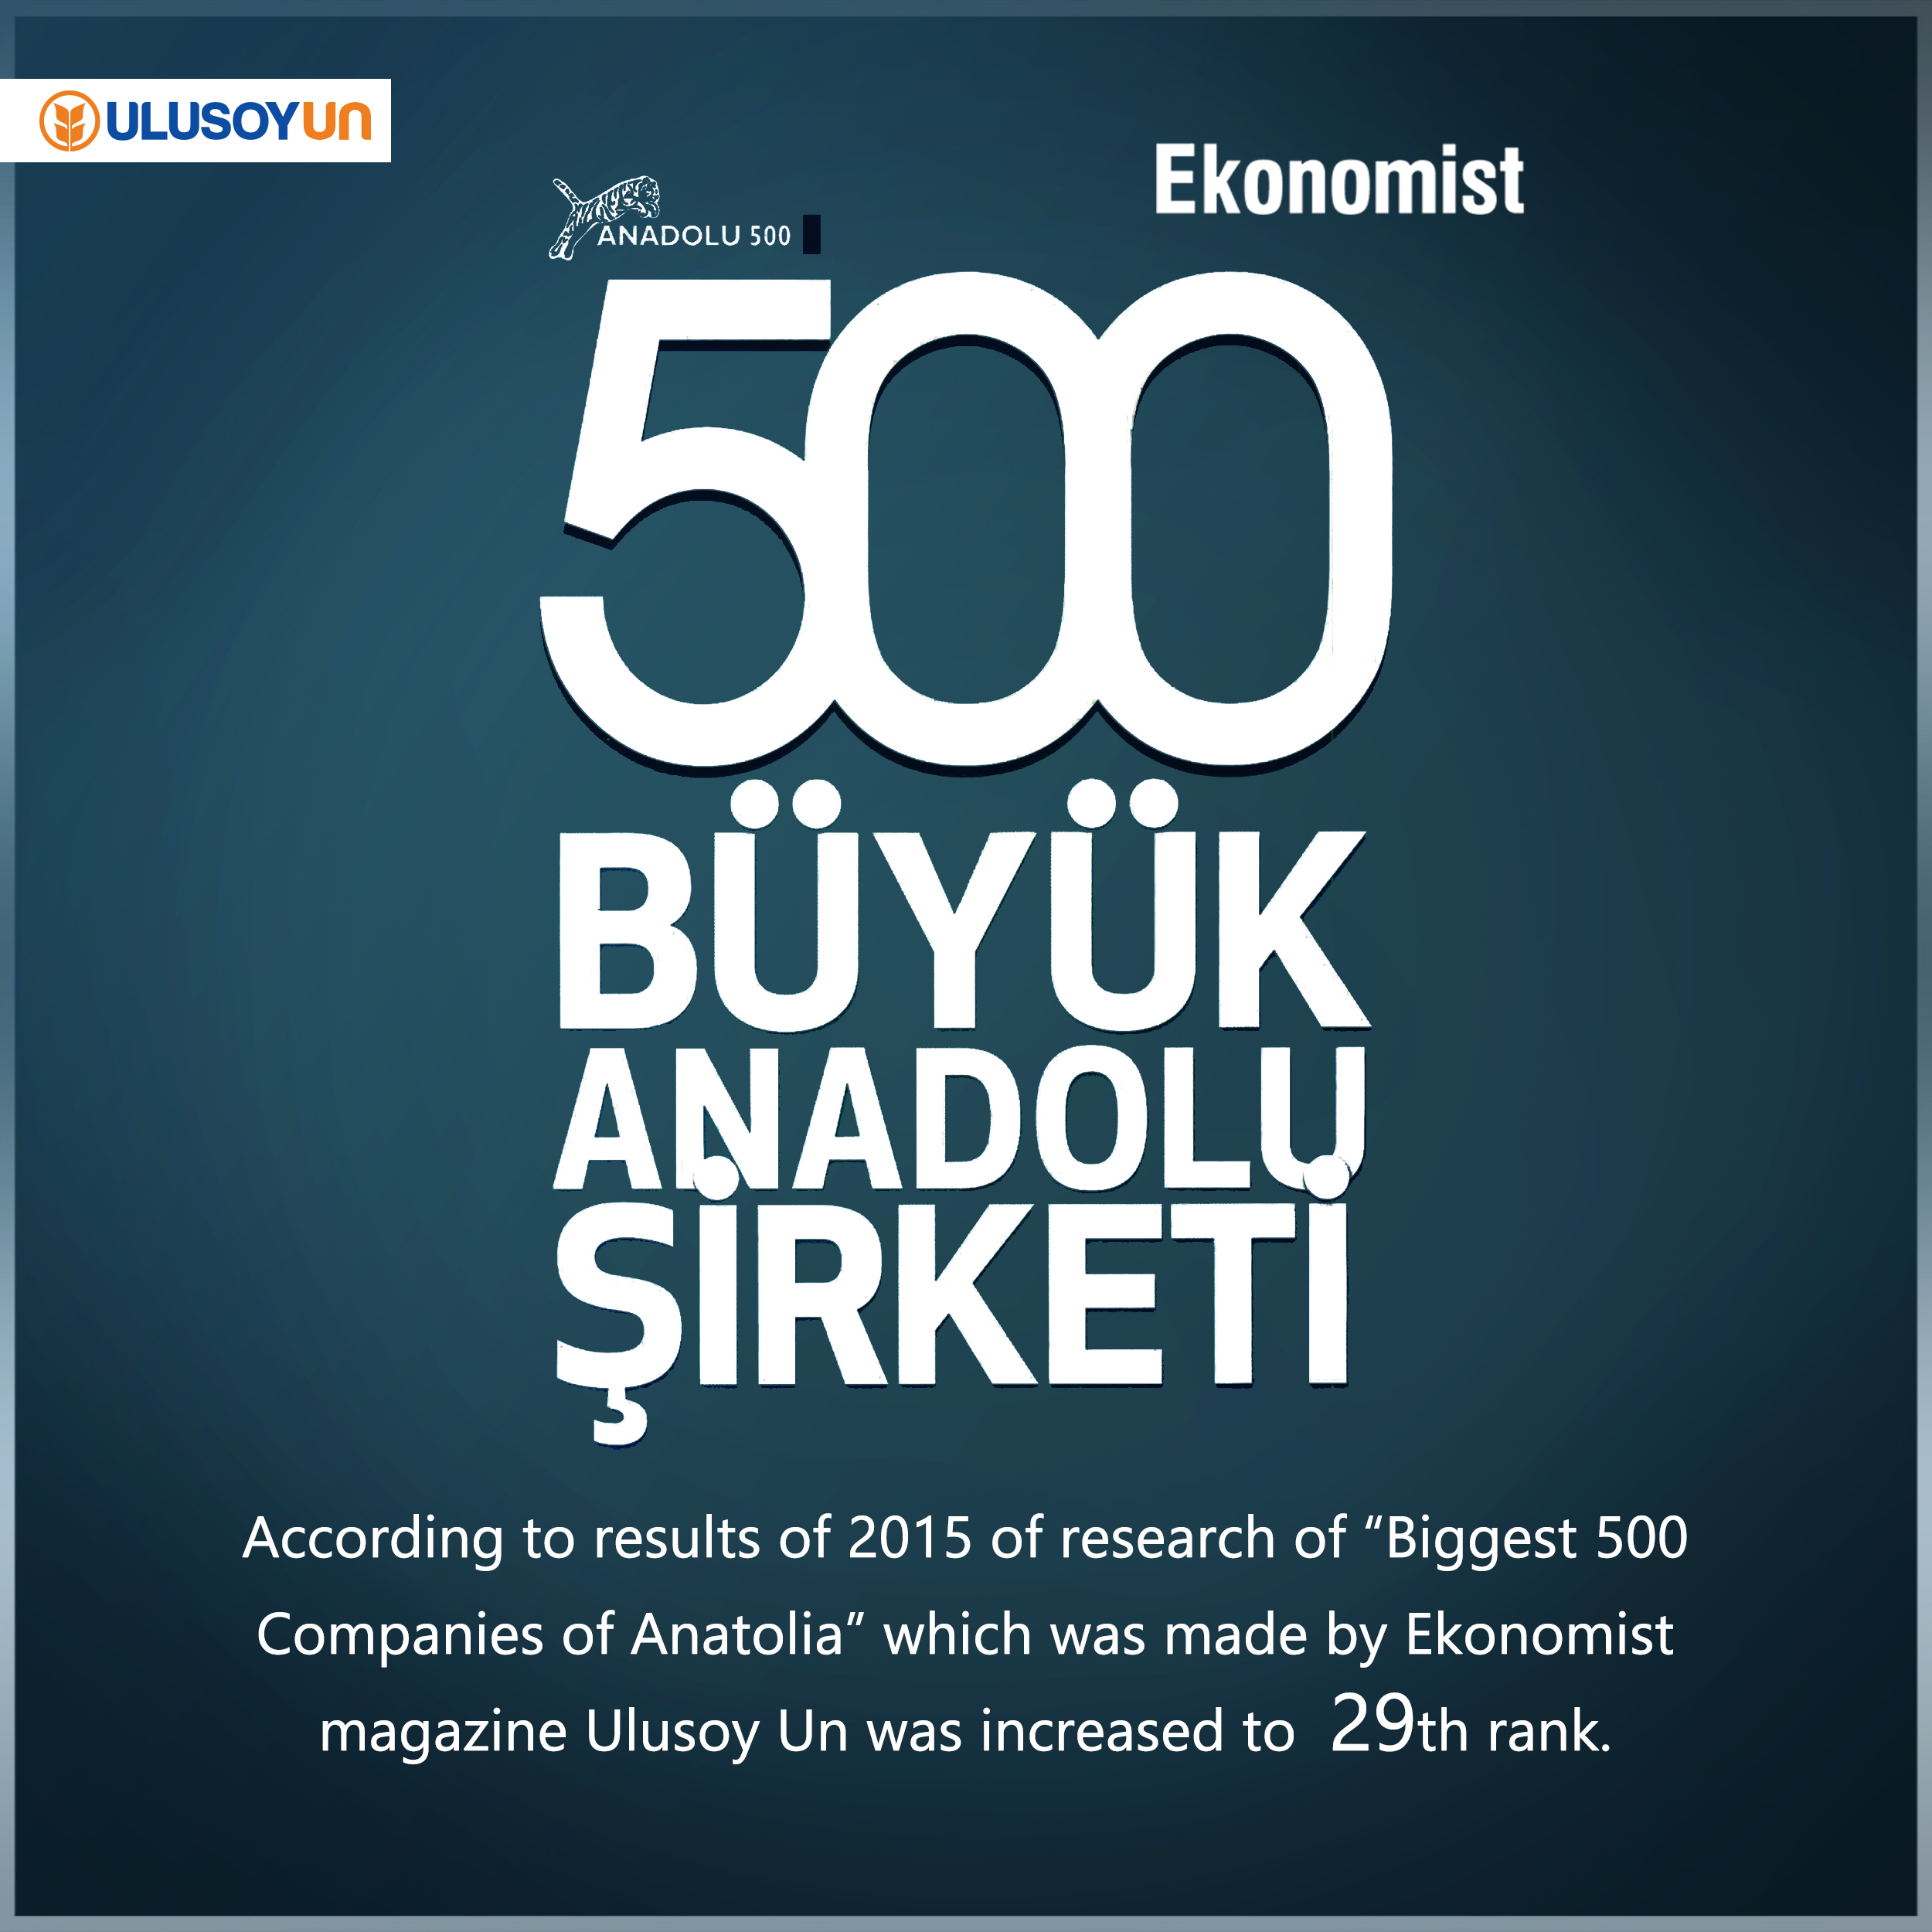 Ekonomist Magazine, research, Biggest Anatolian Companies